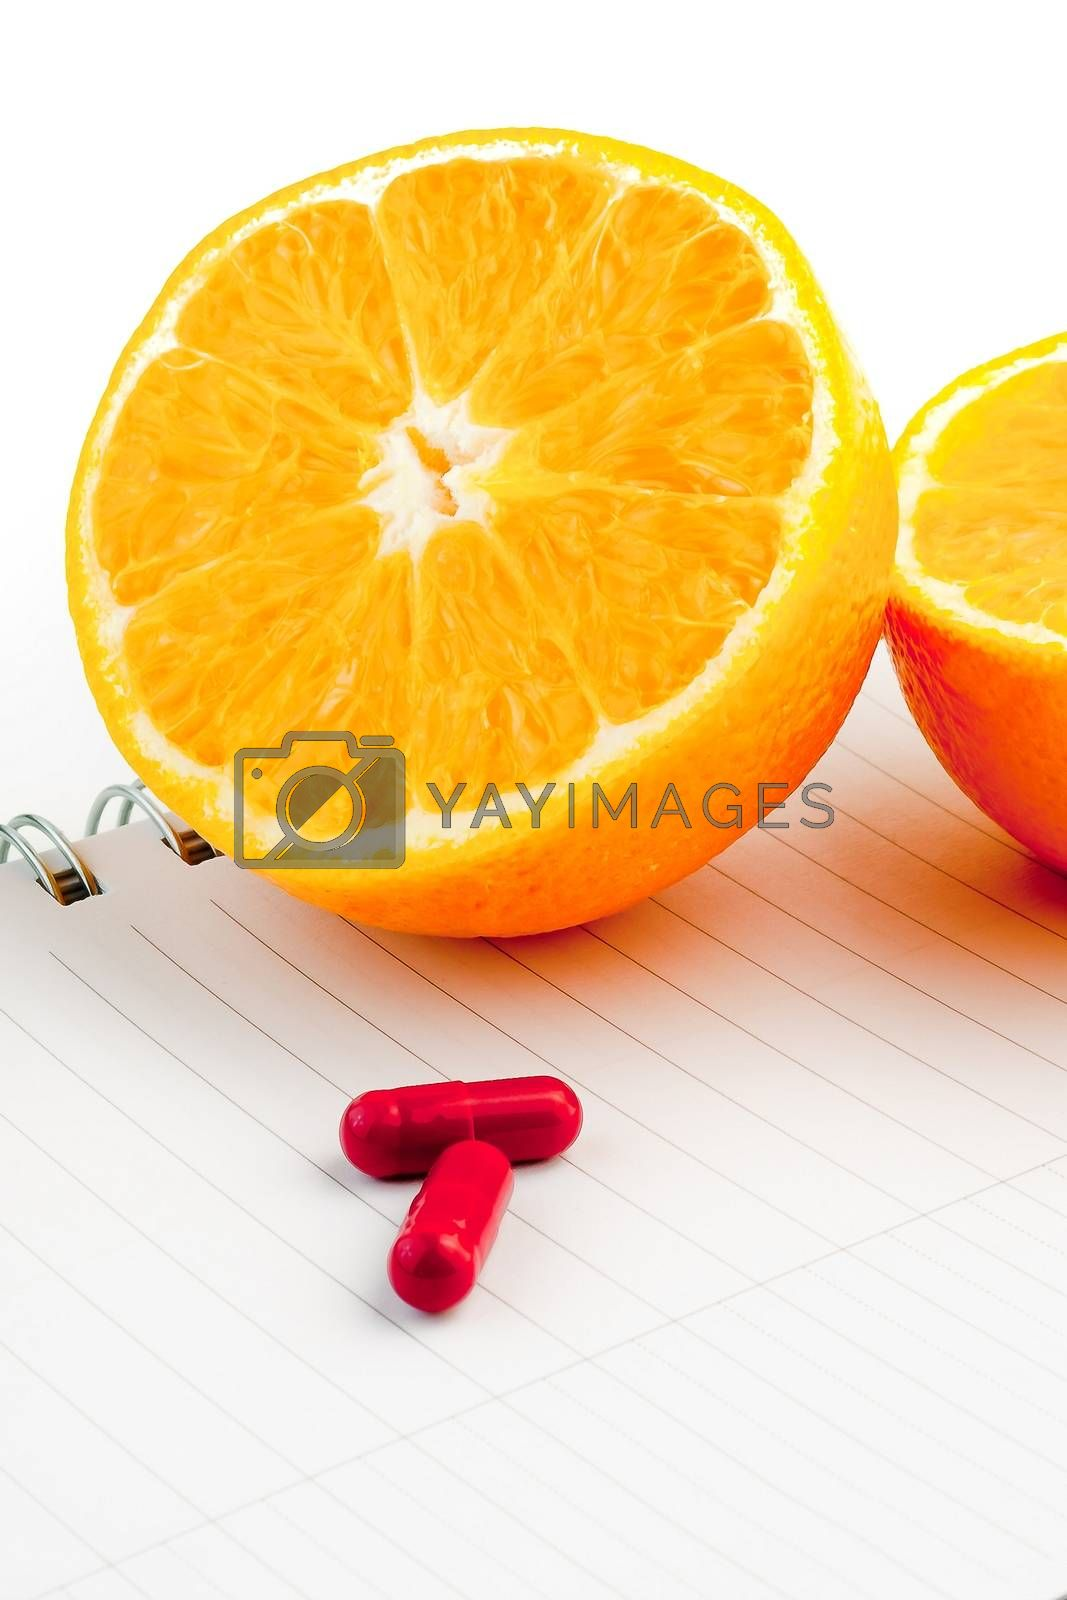 detail an orange with a pencil on notepad